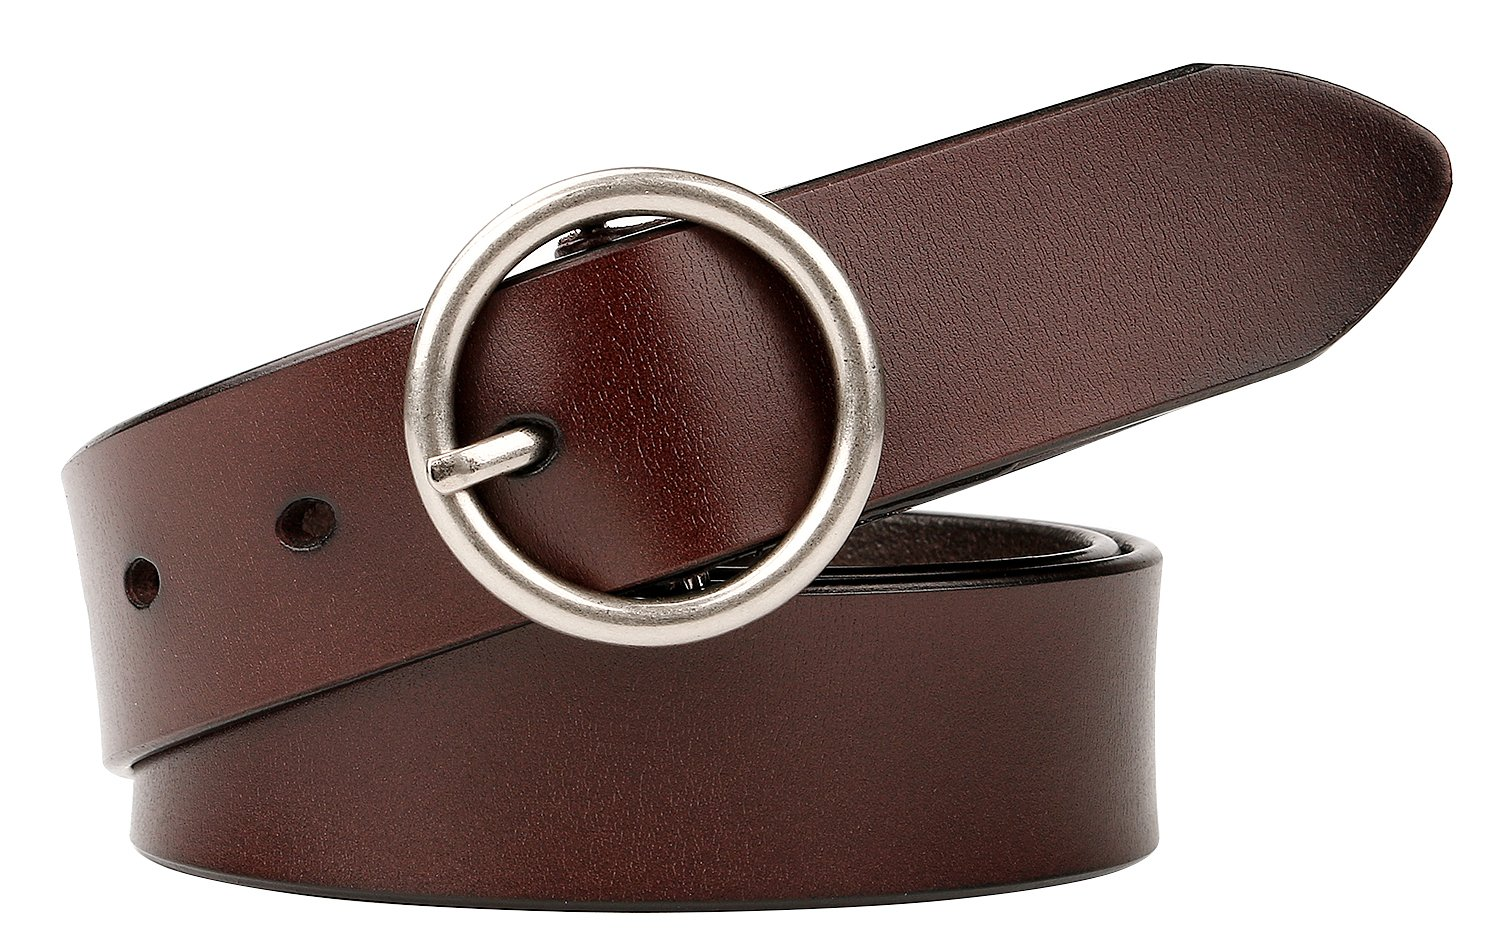 WERFORU Women Casual Dress Belt Genuine Leather Belt with Round Buckle (Suit Pant Size 24''-28'', Style1-03-Coffee)